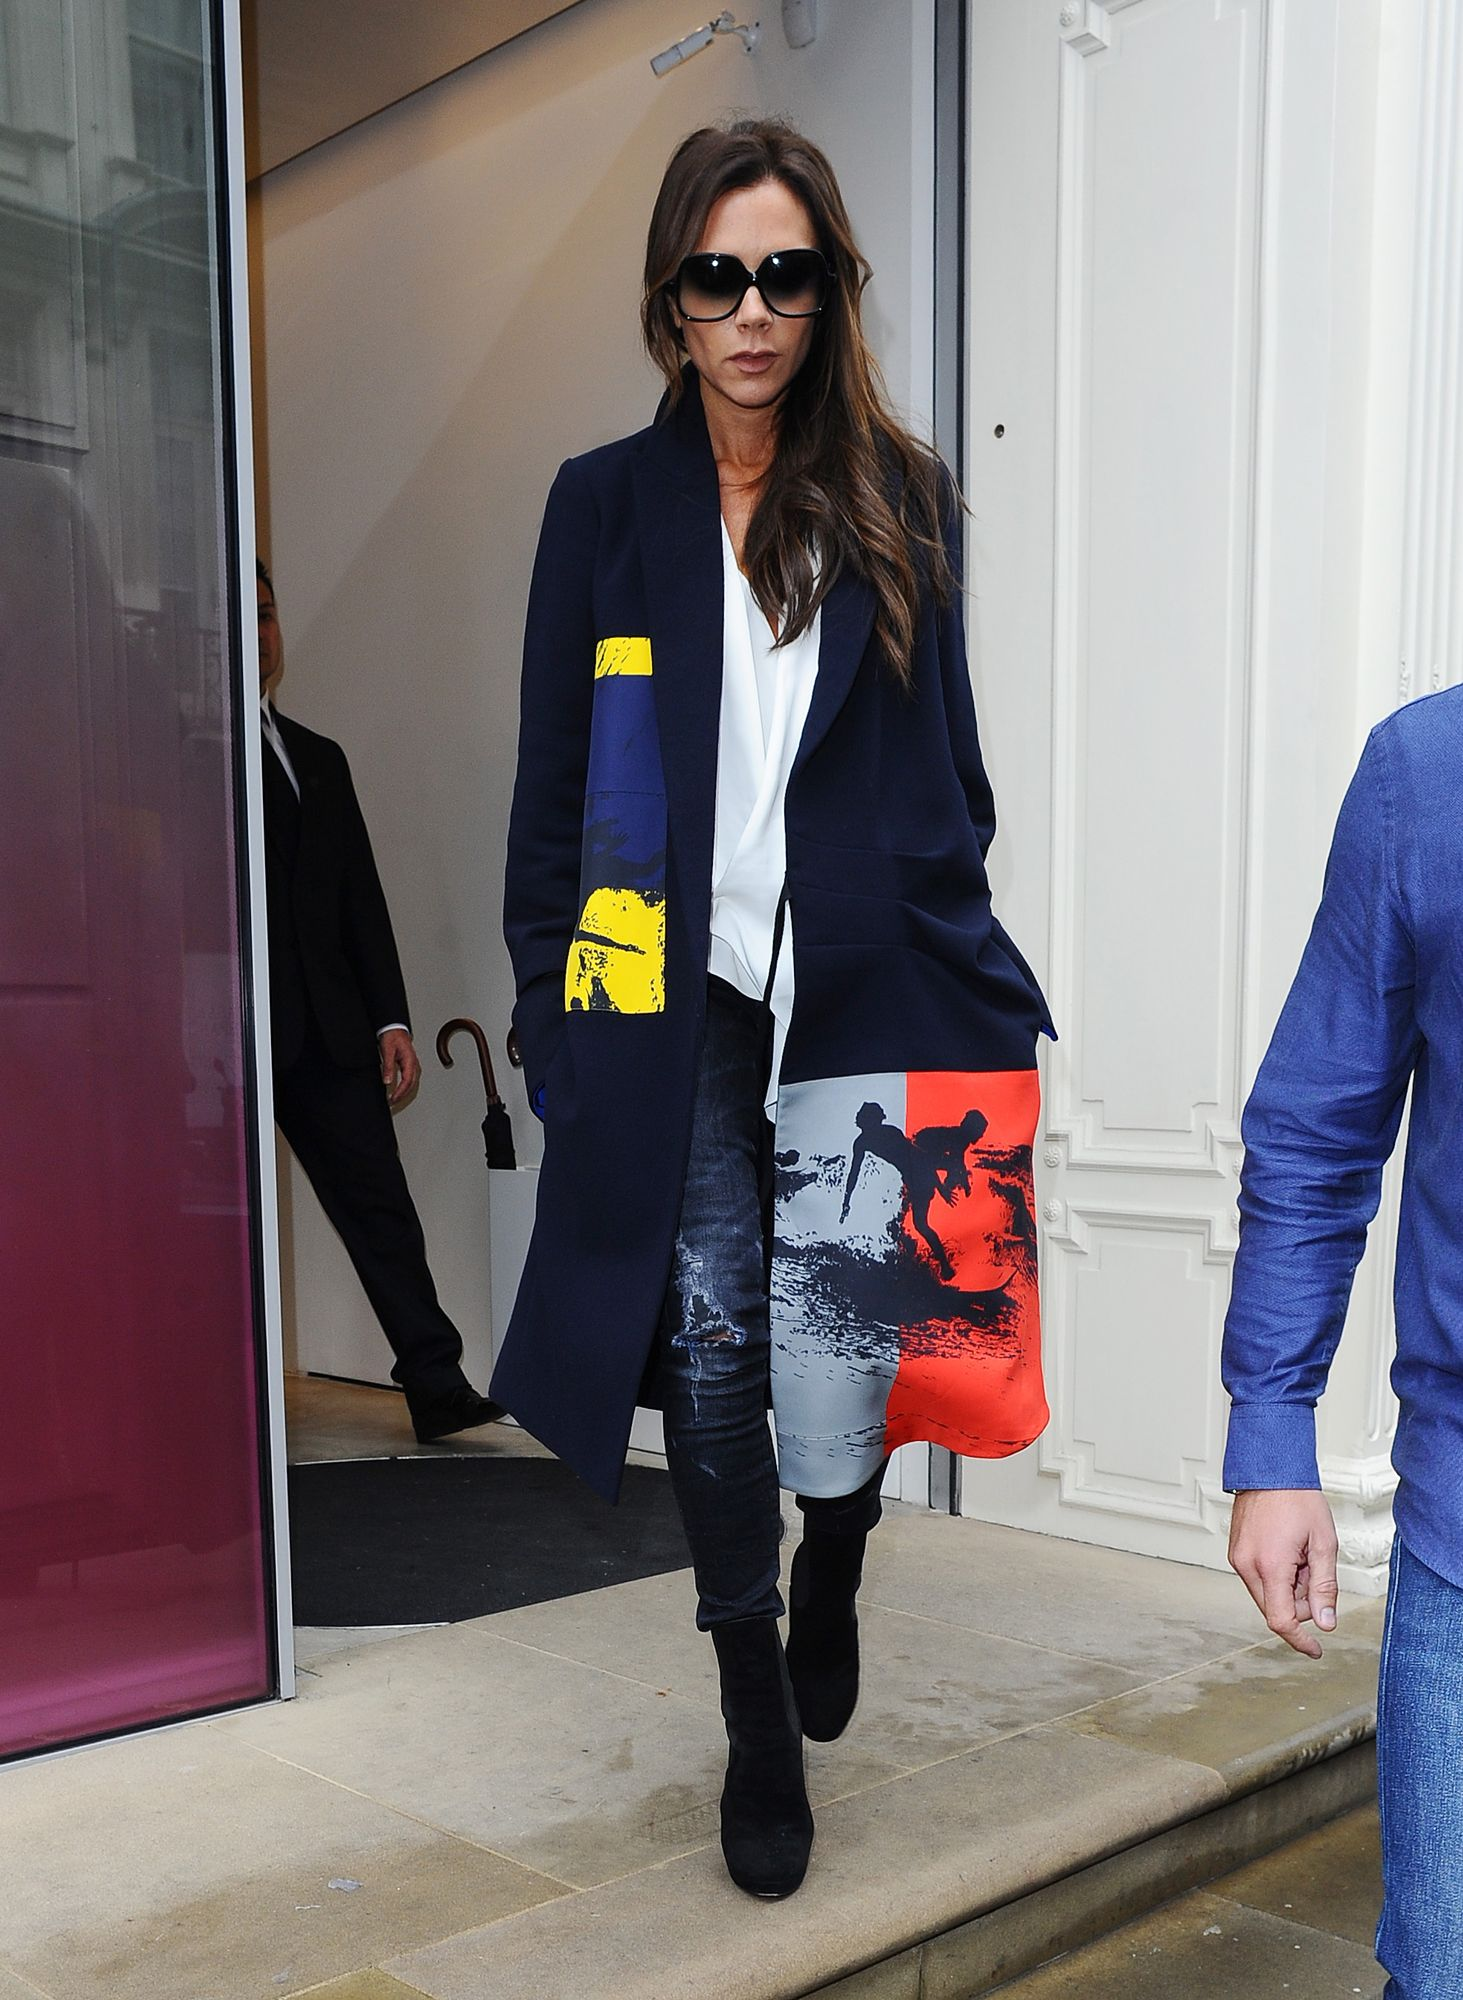 Image result for celebrity london street fashion 2017